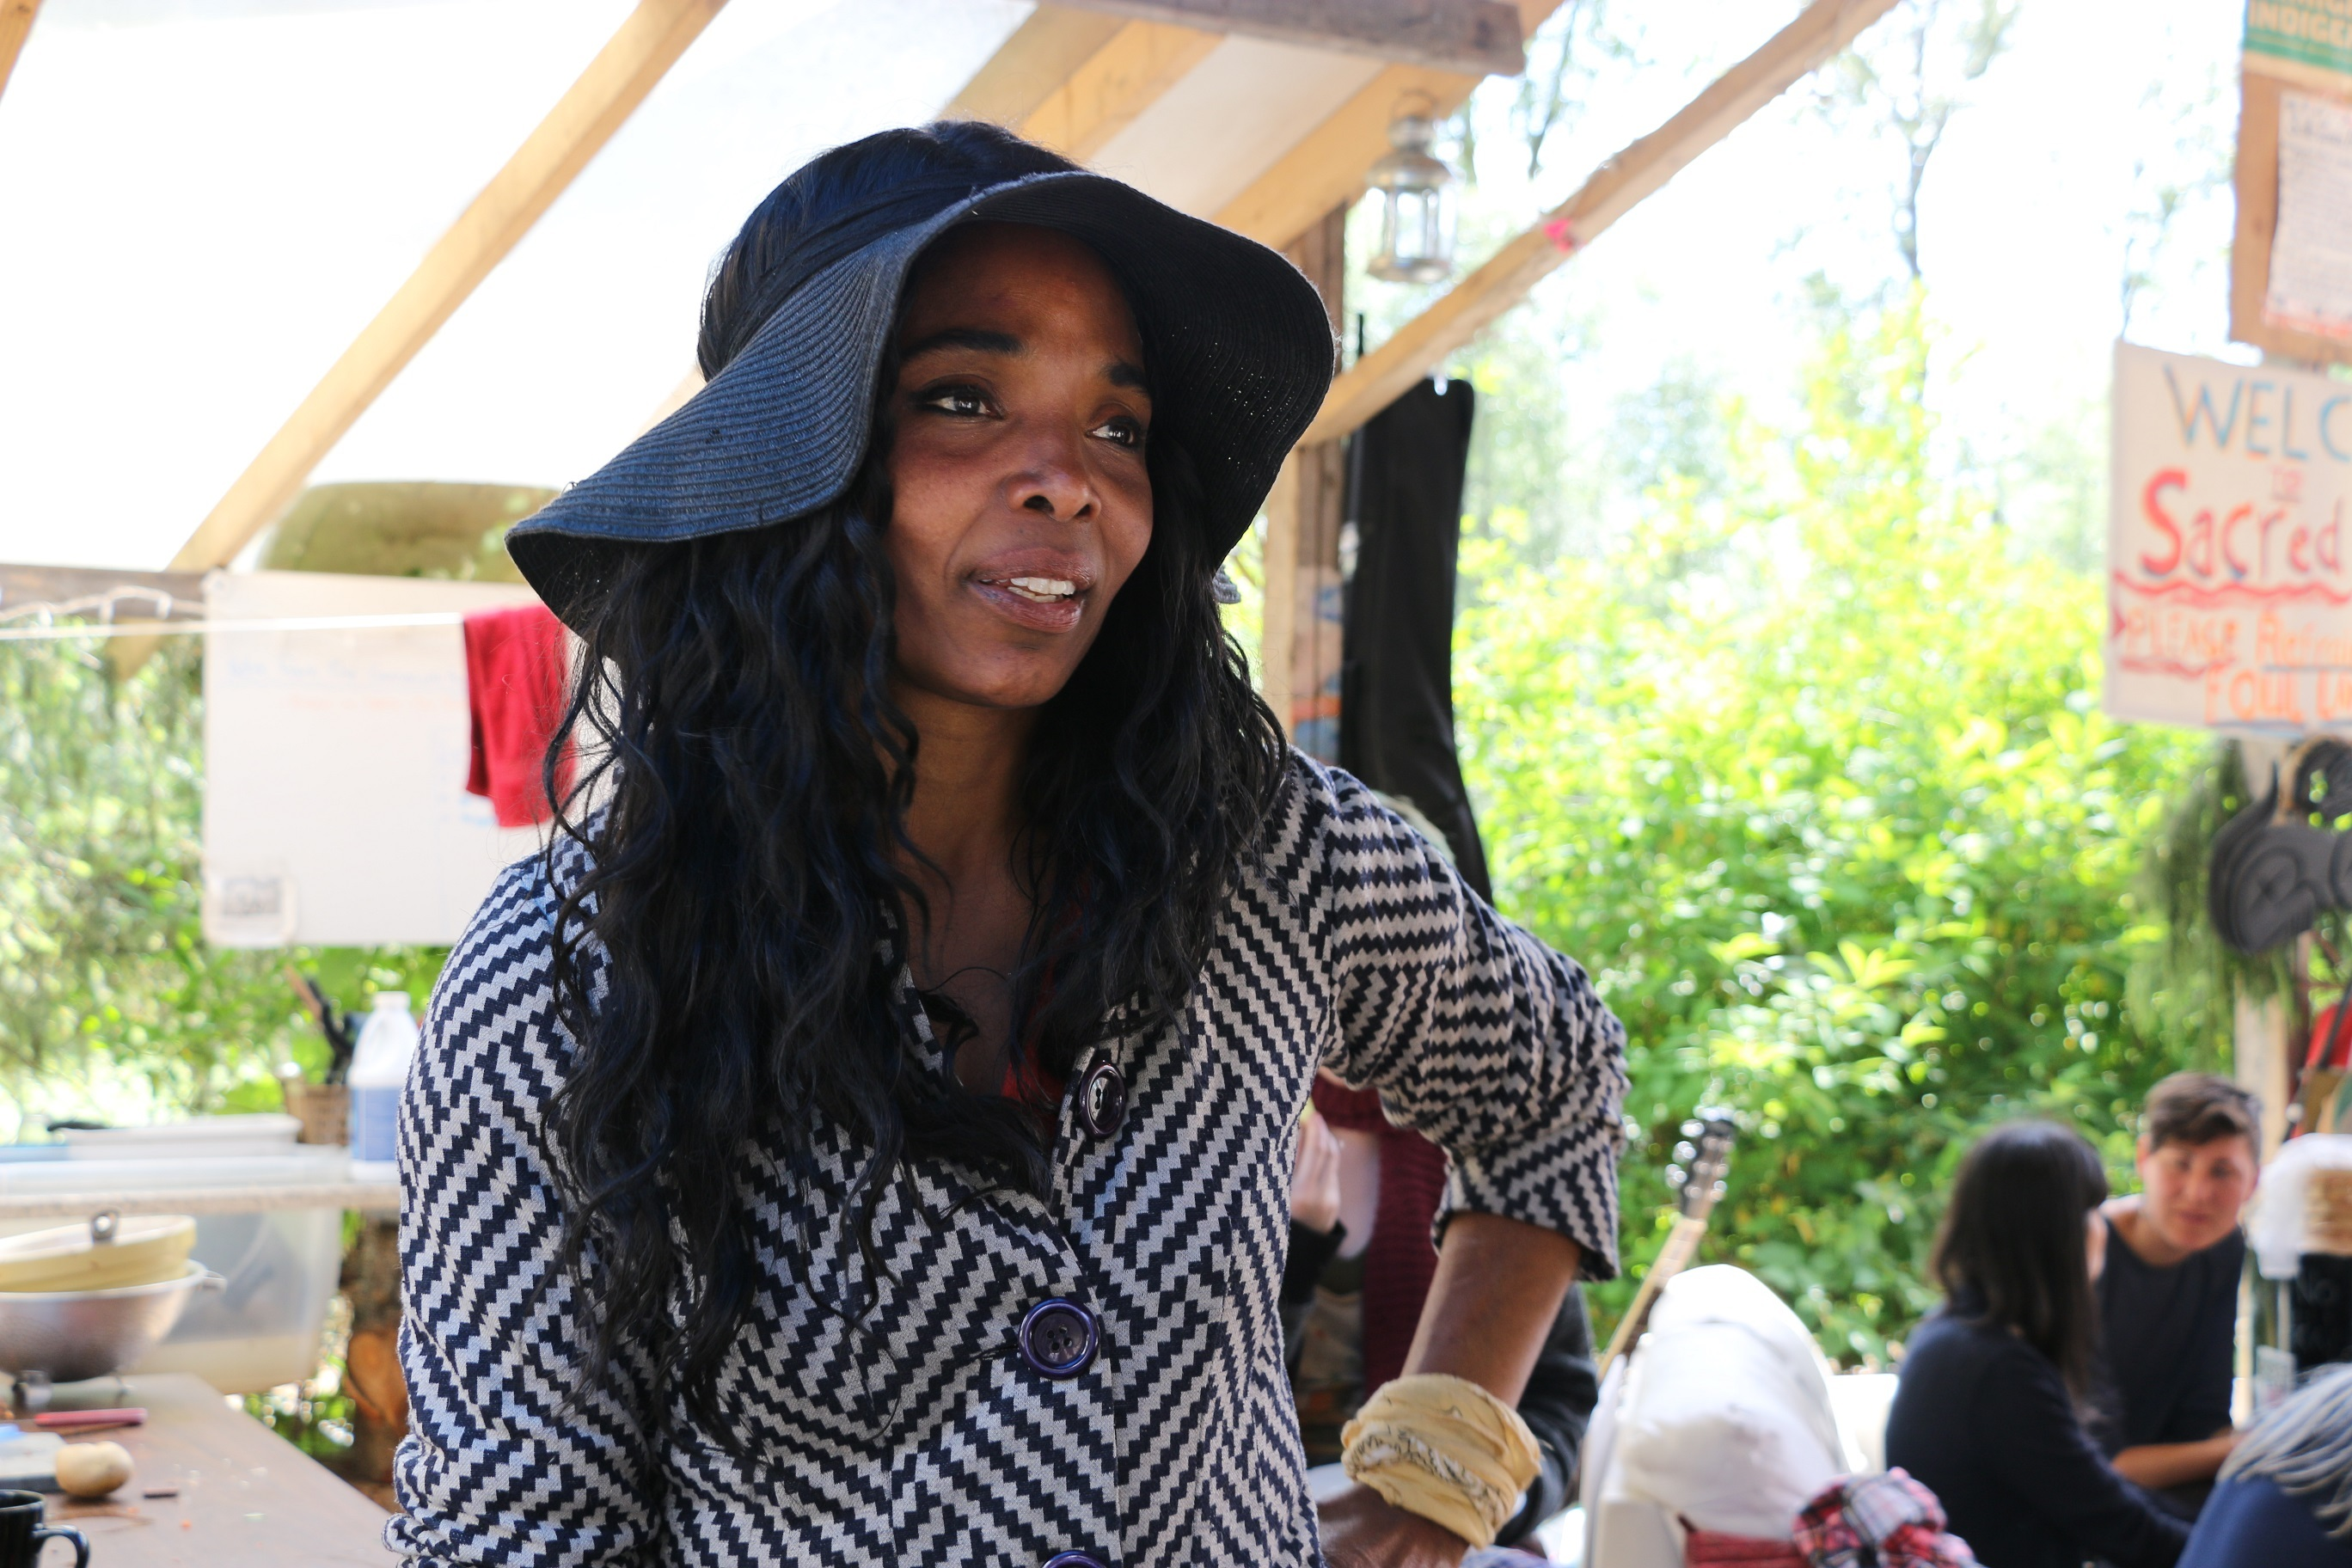 Makeda Martin says most of the Forest Grove residents support Camp Cloud. (Maryse Zeidler/CBC)